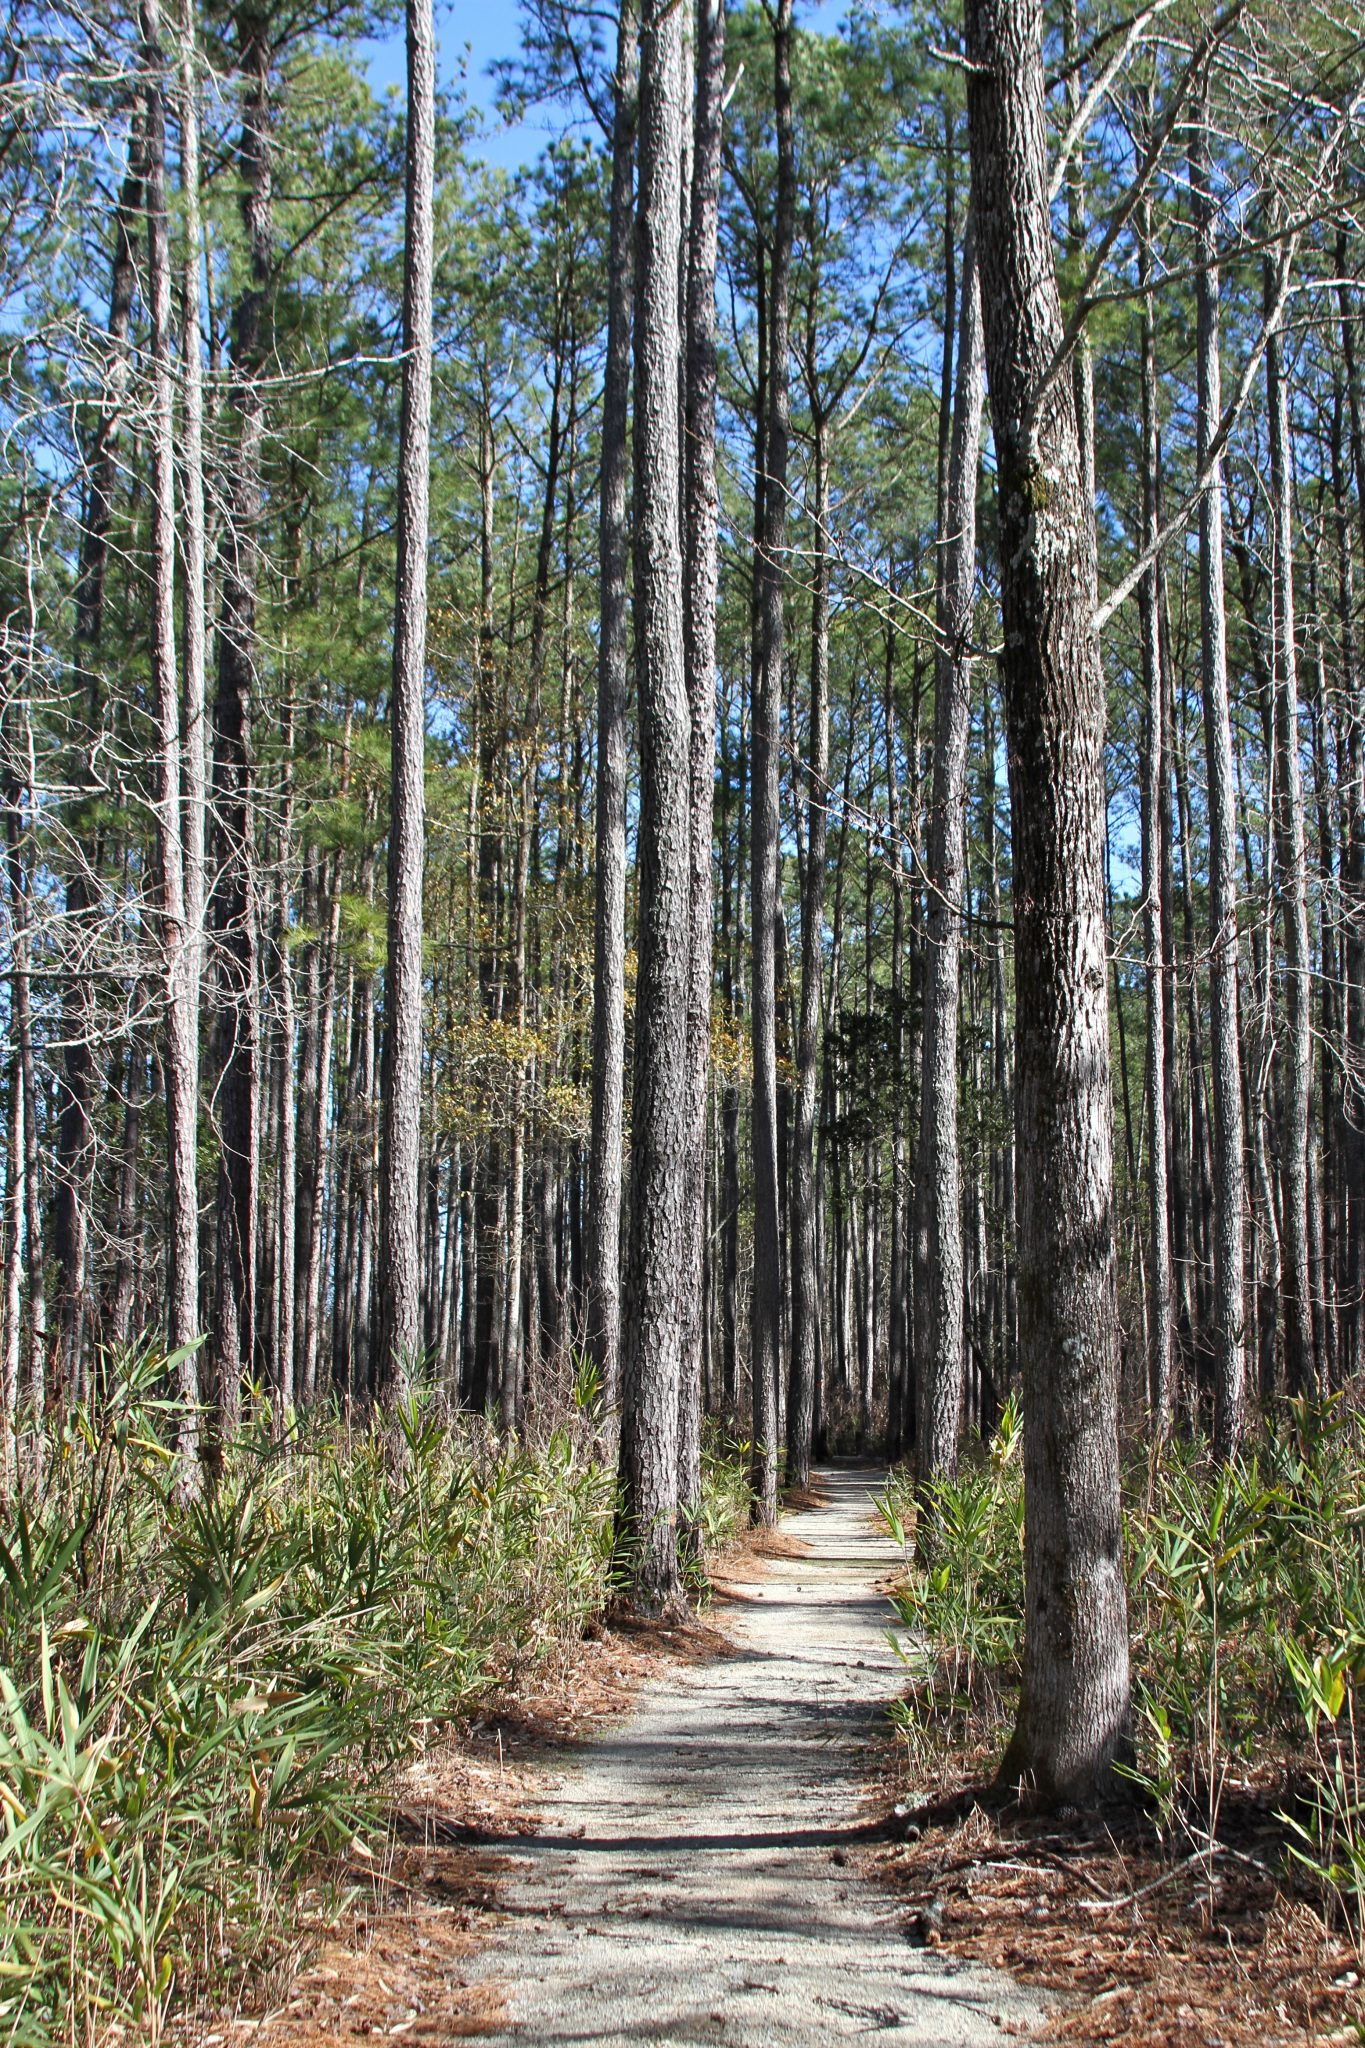 Hiking trail through a long leaf pine forest